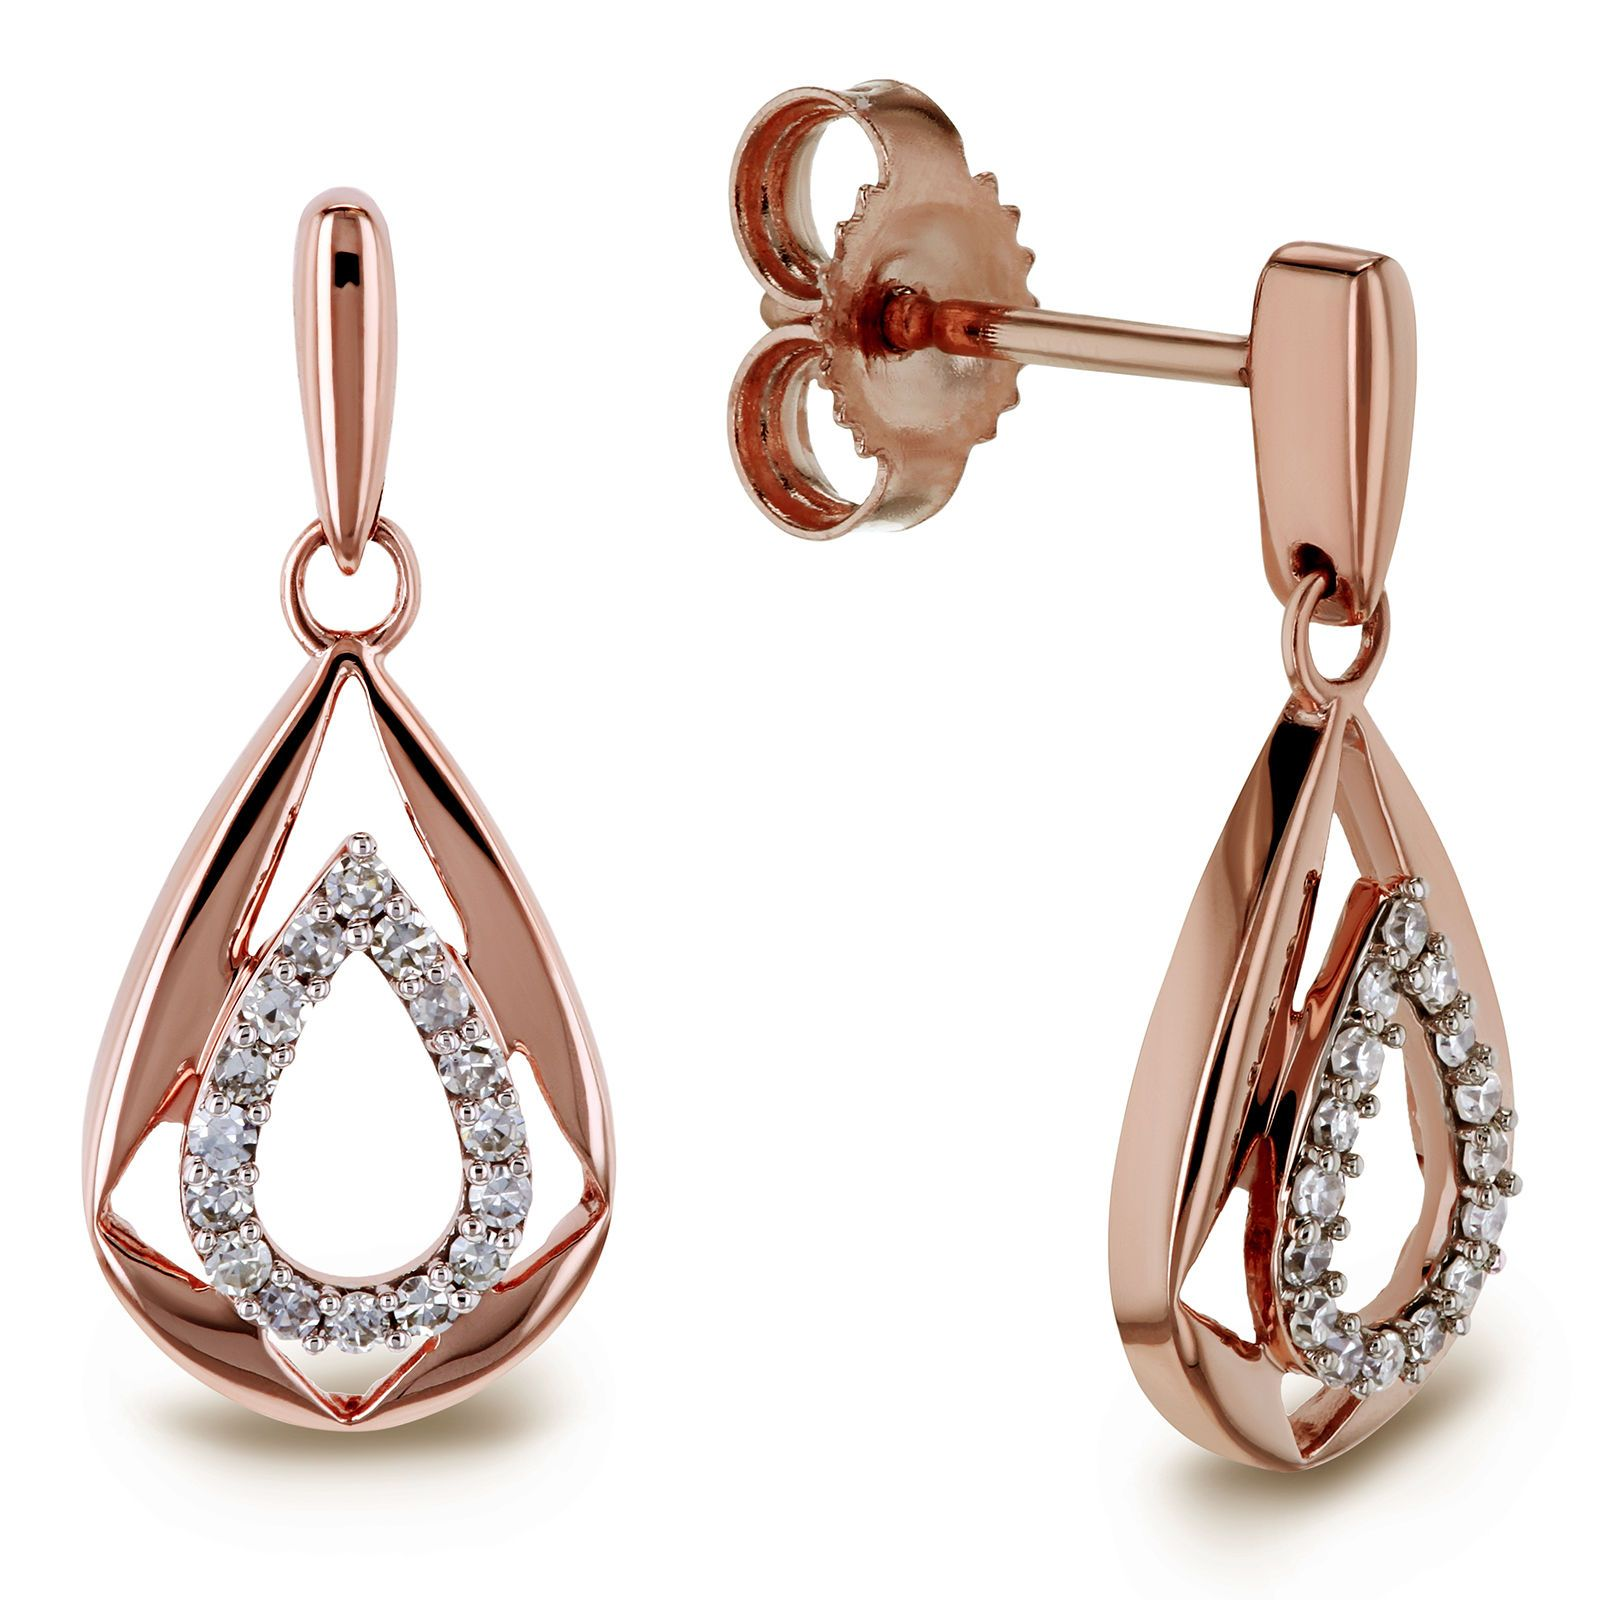 Diamond Droplet Dangle Earrings 10k Rose Gold Rose Gold Earrings Dangle Earrings Diamond